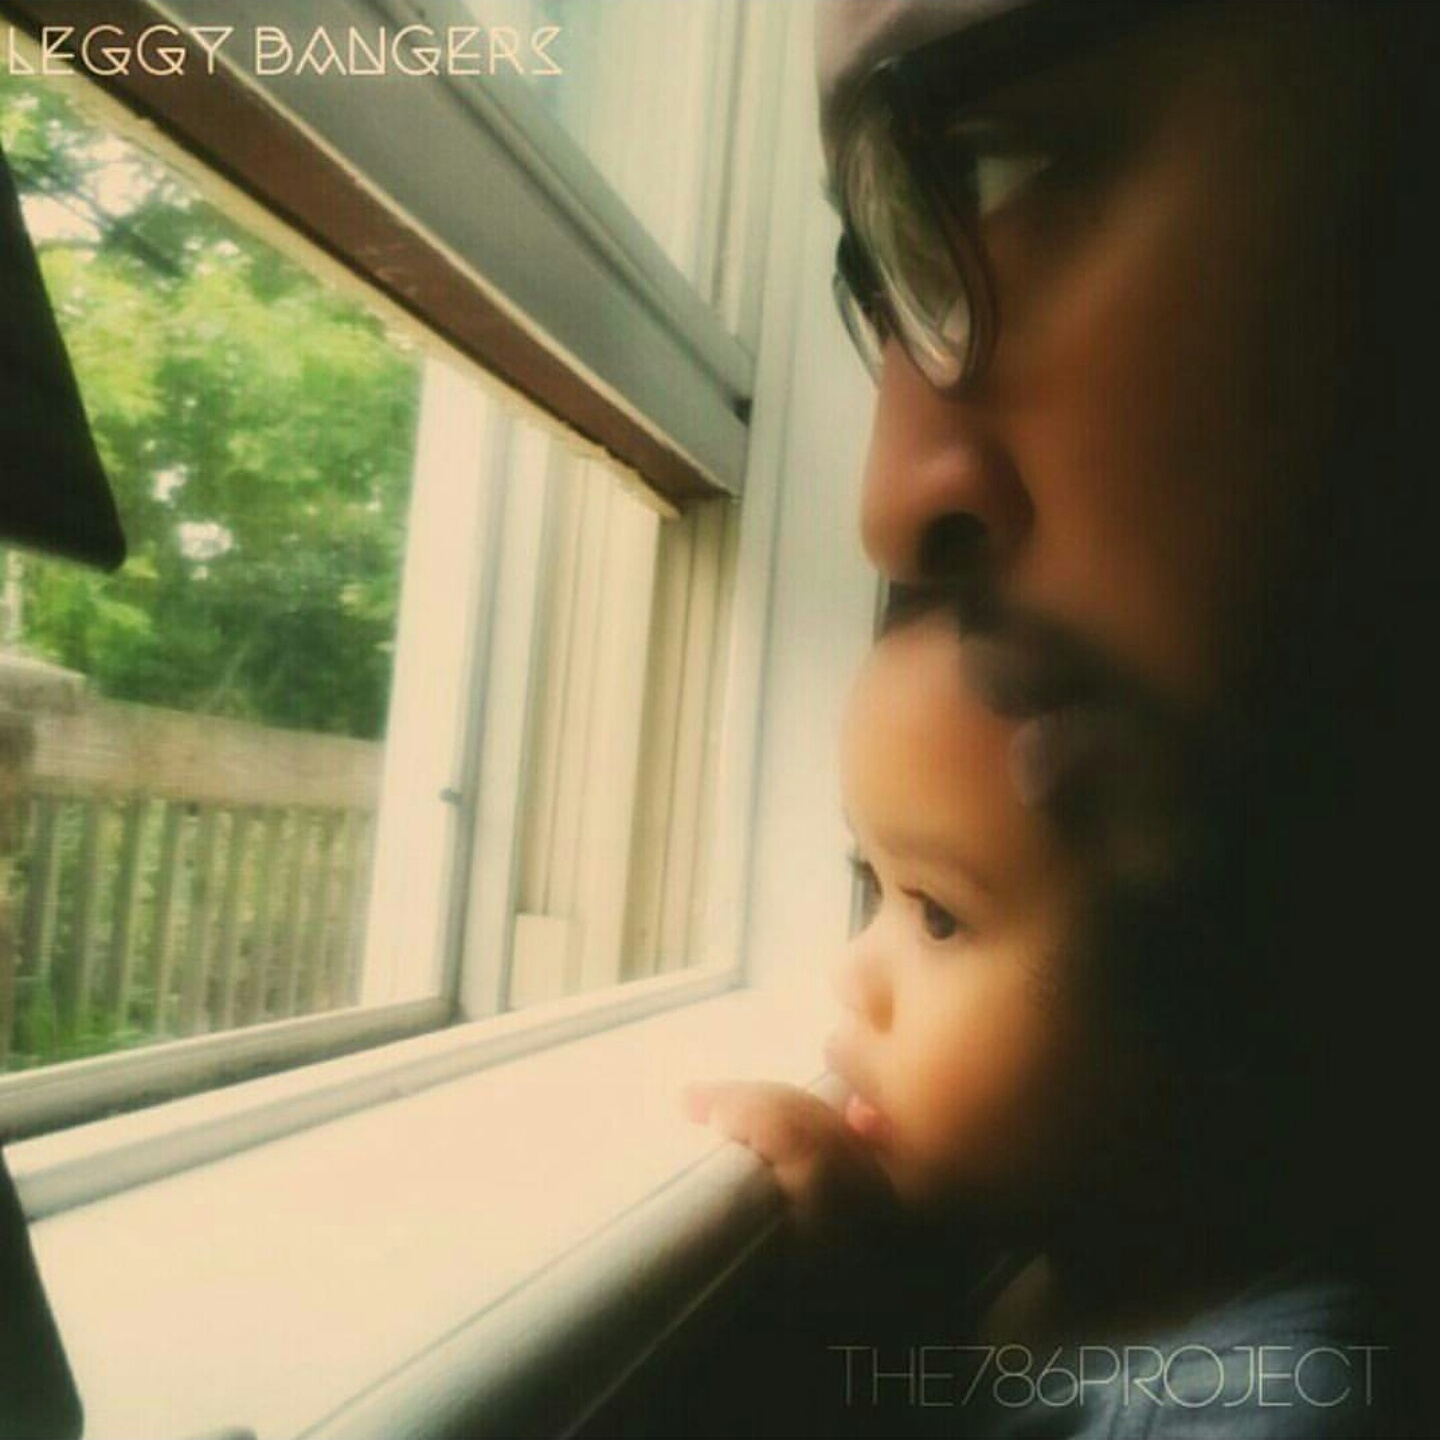 [New Music] Leggy Bangers X The 786 Project